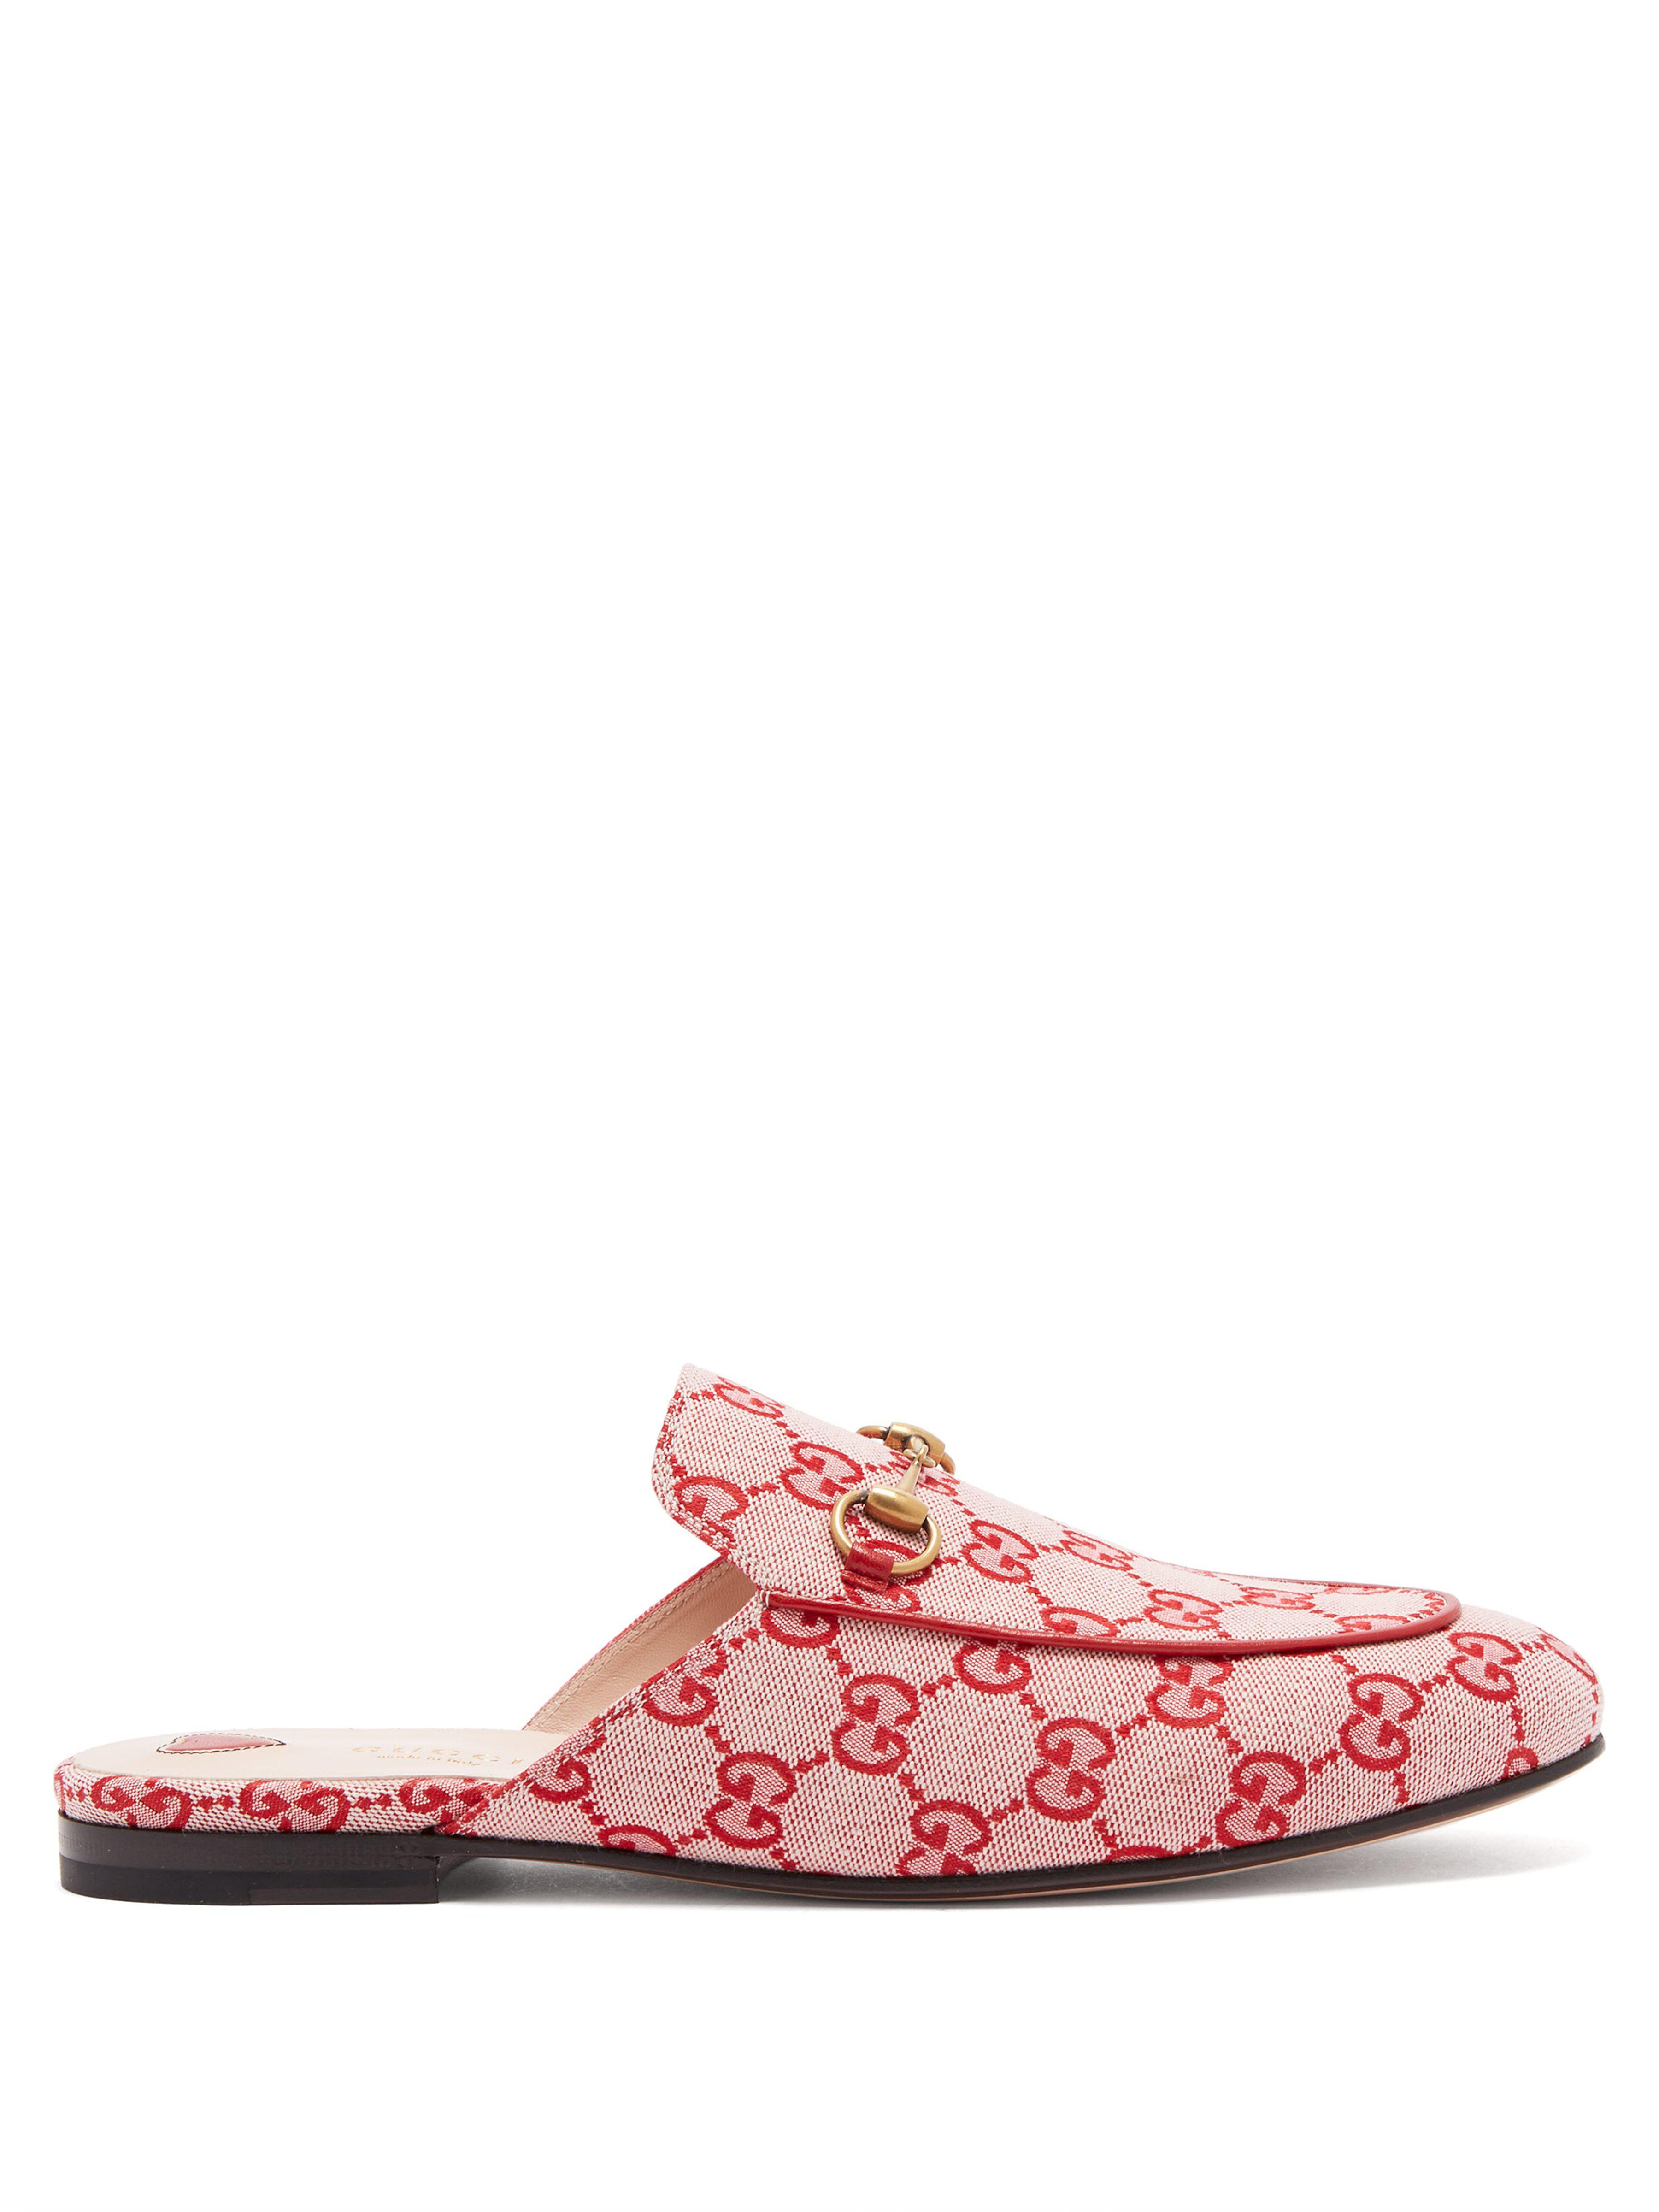 cdd7634035b Gucci Princetown Logo Jacquard Backless Loafers in Red - Lyst